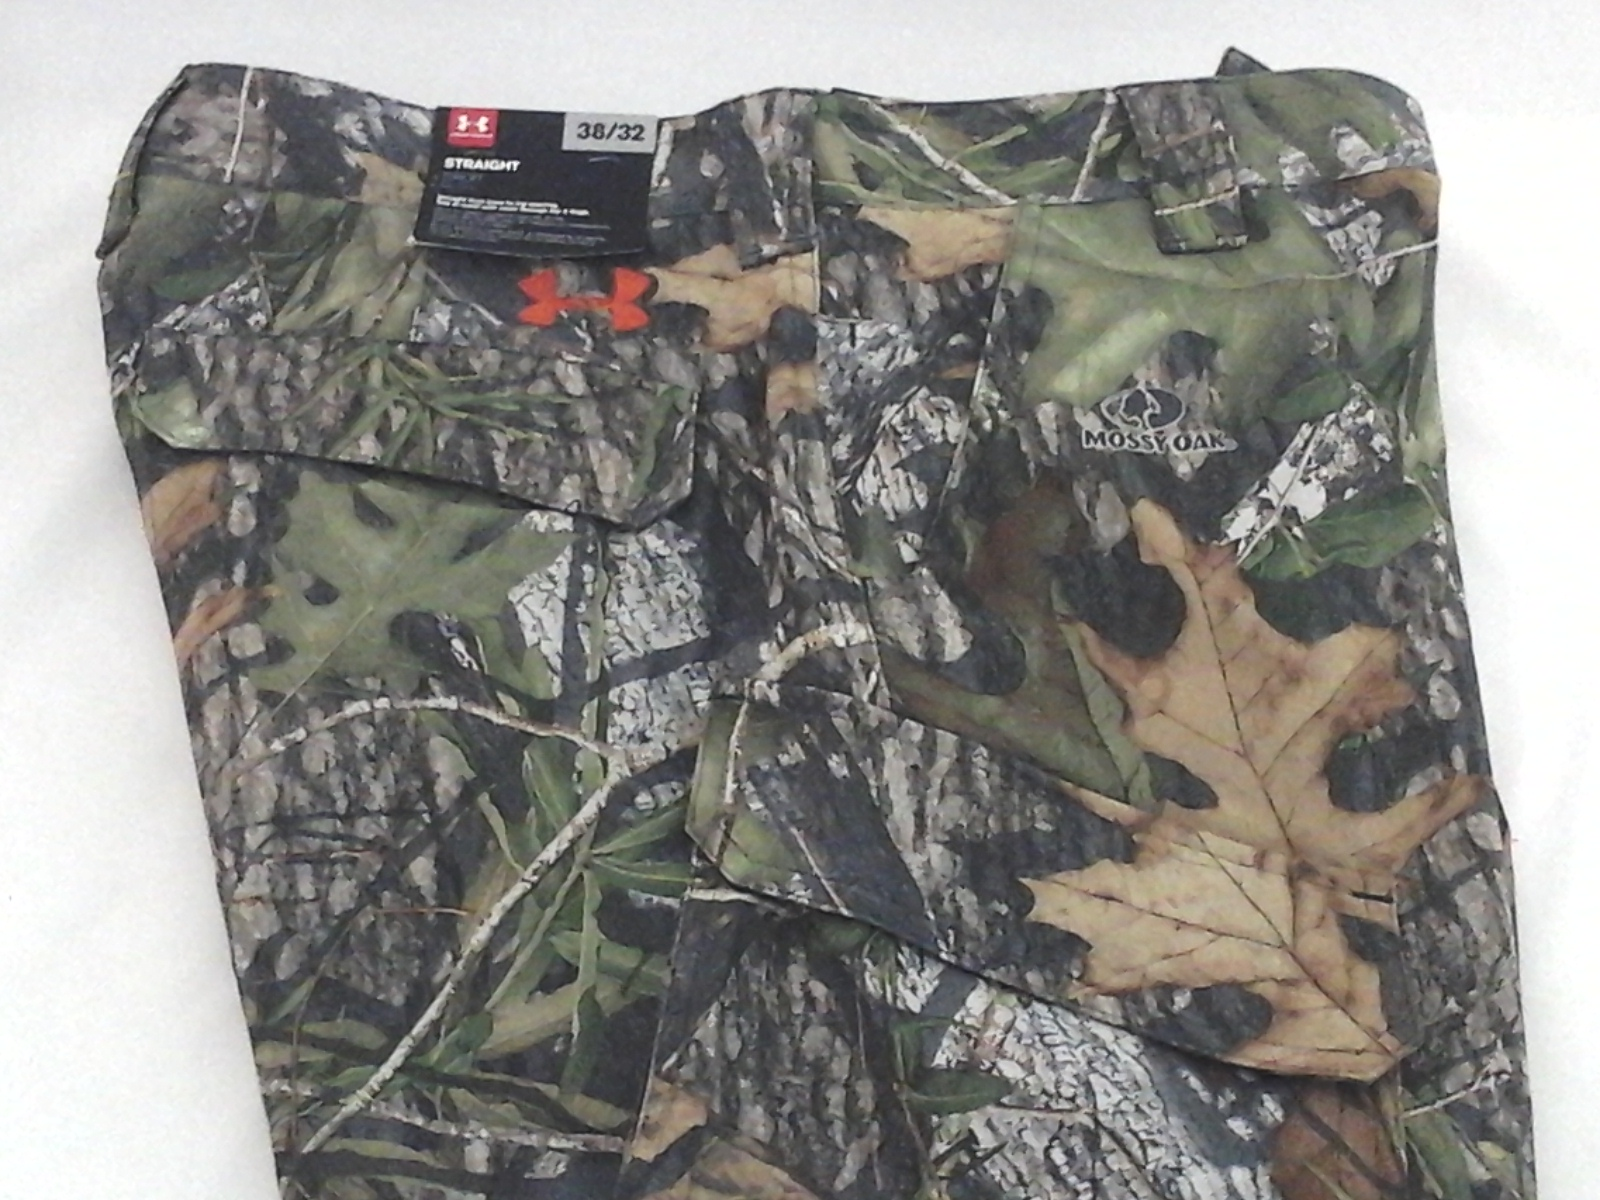 2f3f568f5e050 Details about UNDER ARMOUR Pants Storm 1 Mossy Oak Camo 1238327 Straight  Loose Mens 38 x 32